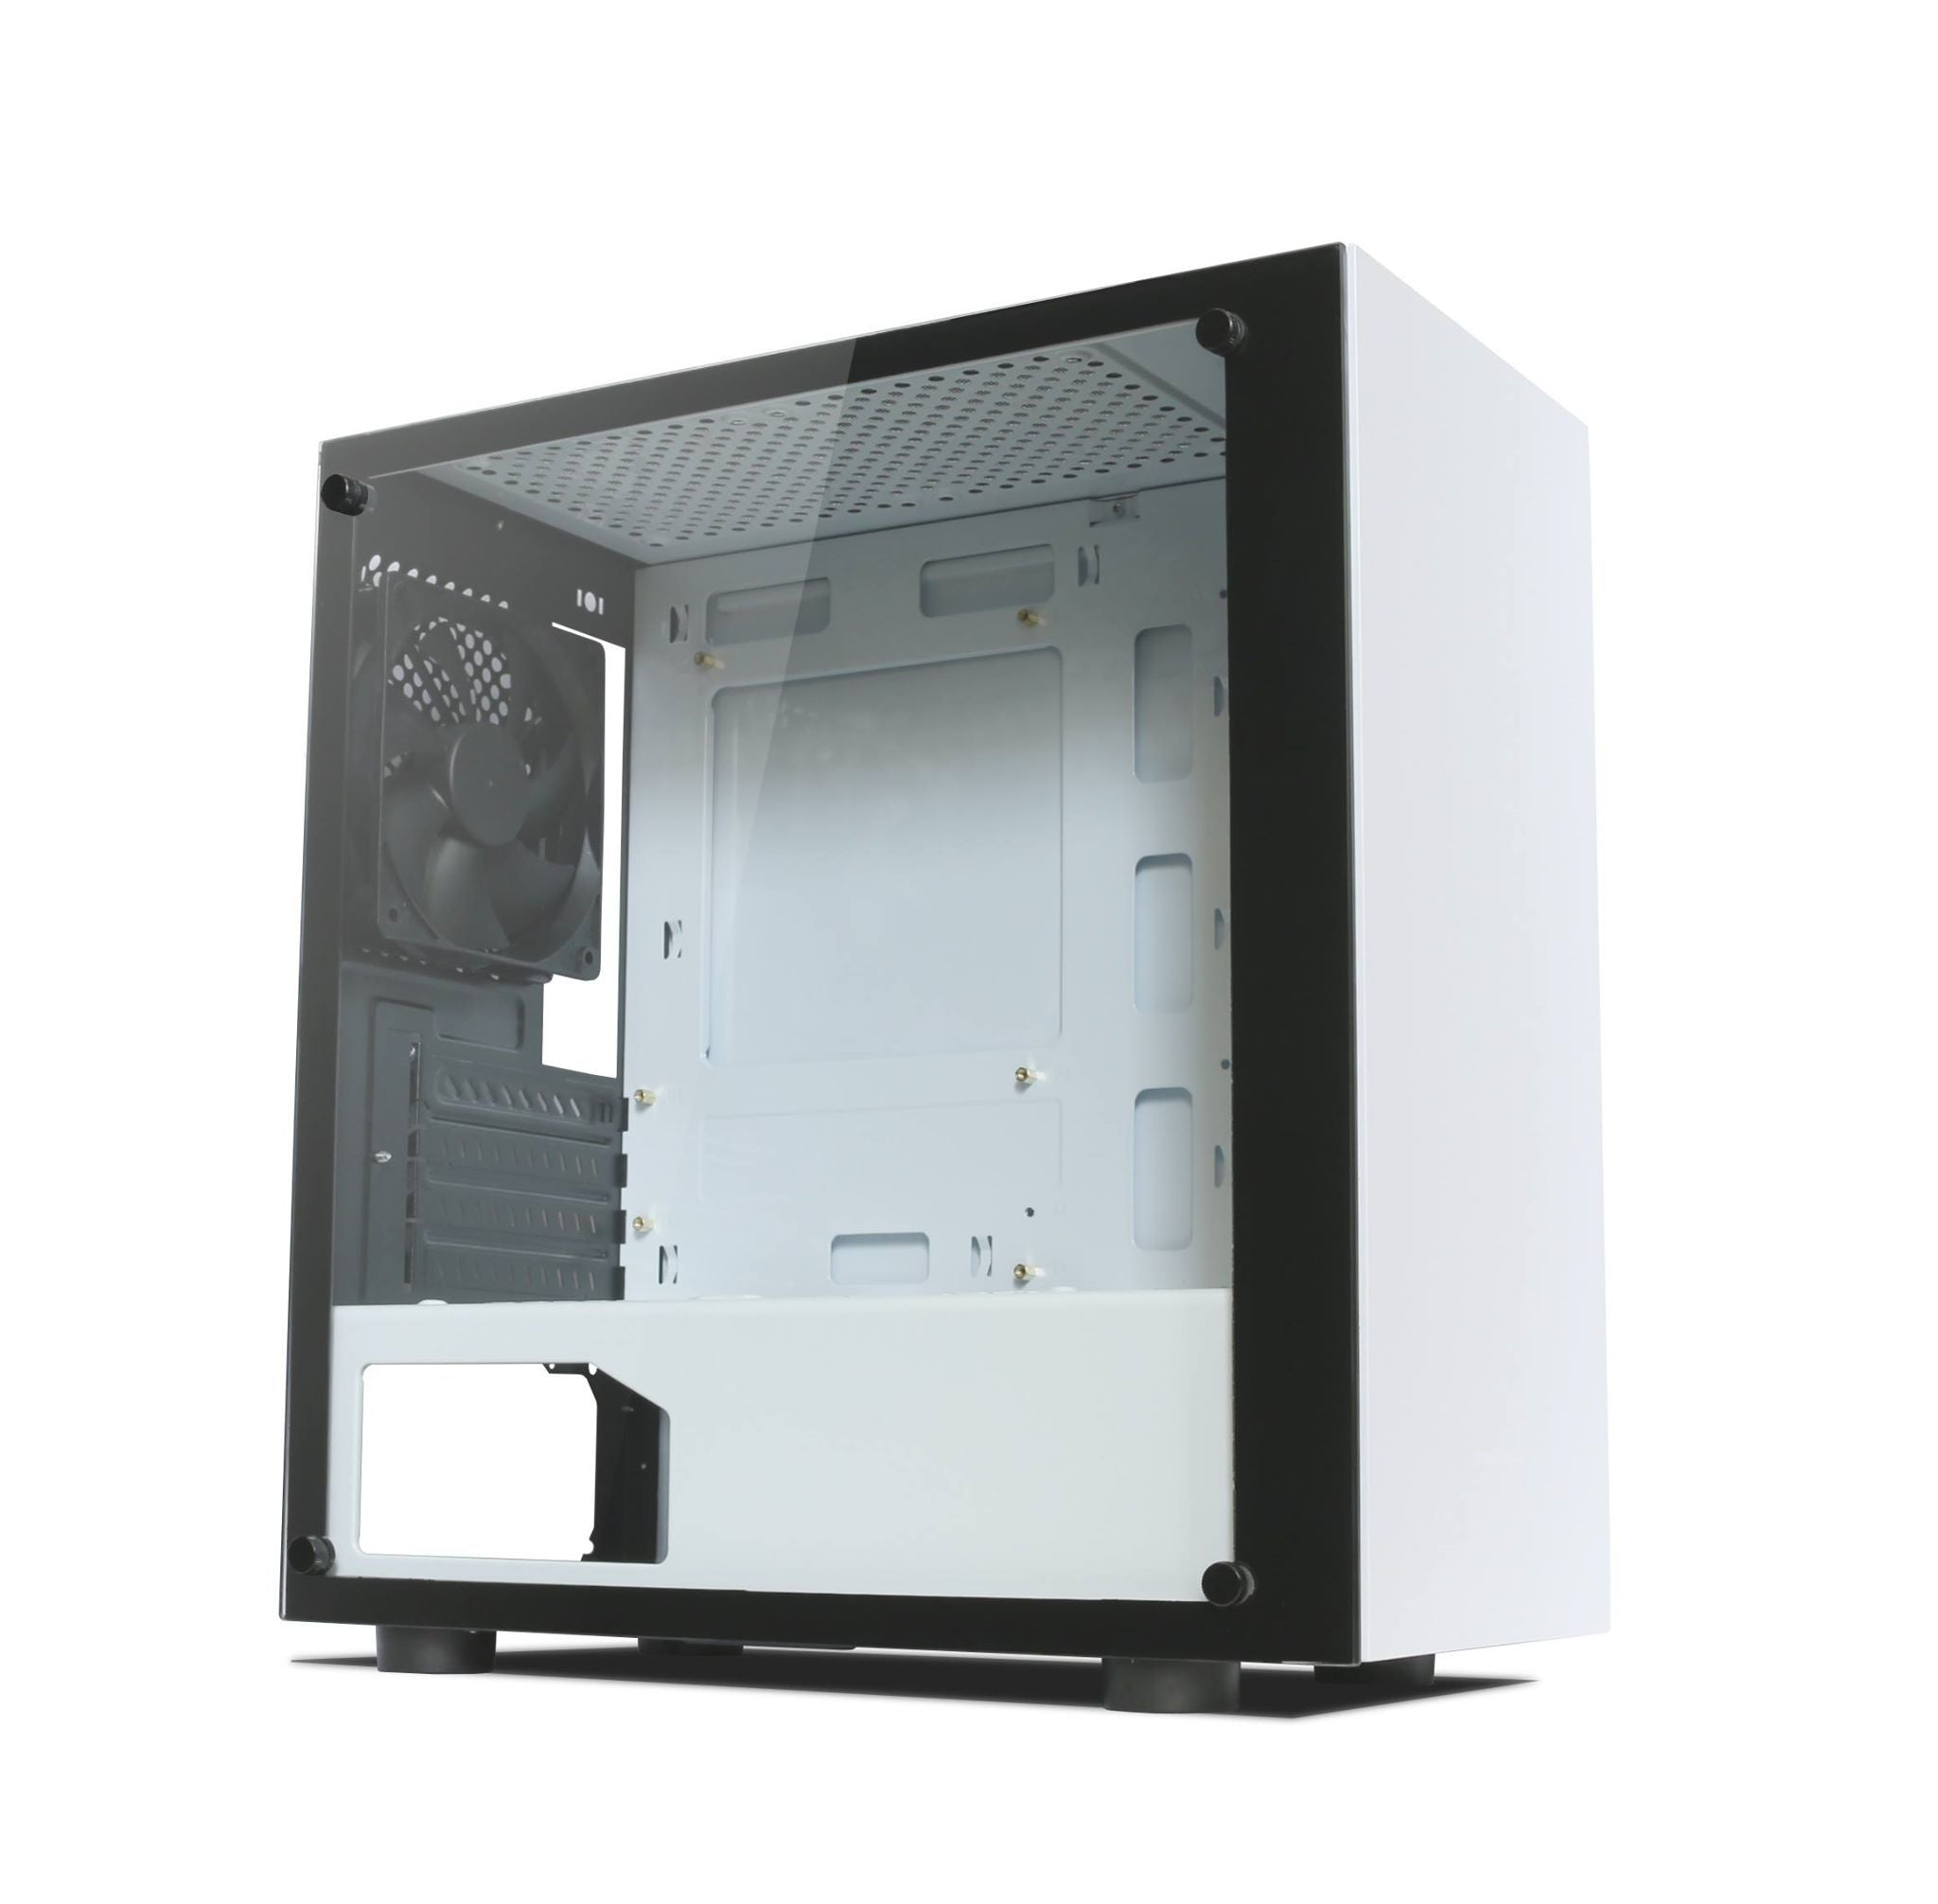 Tecware Nexus M TG Micro ATX Mini Tower Case - White